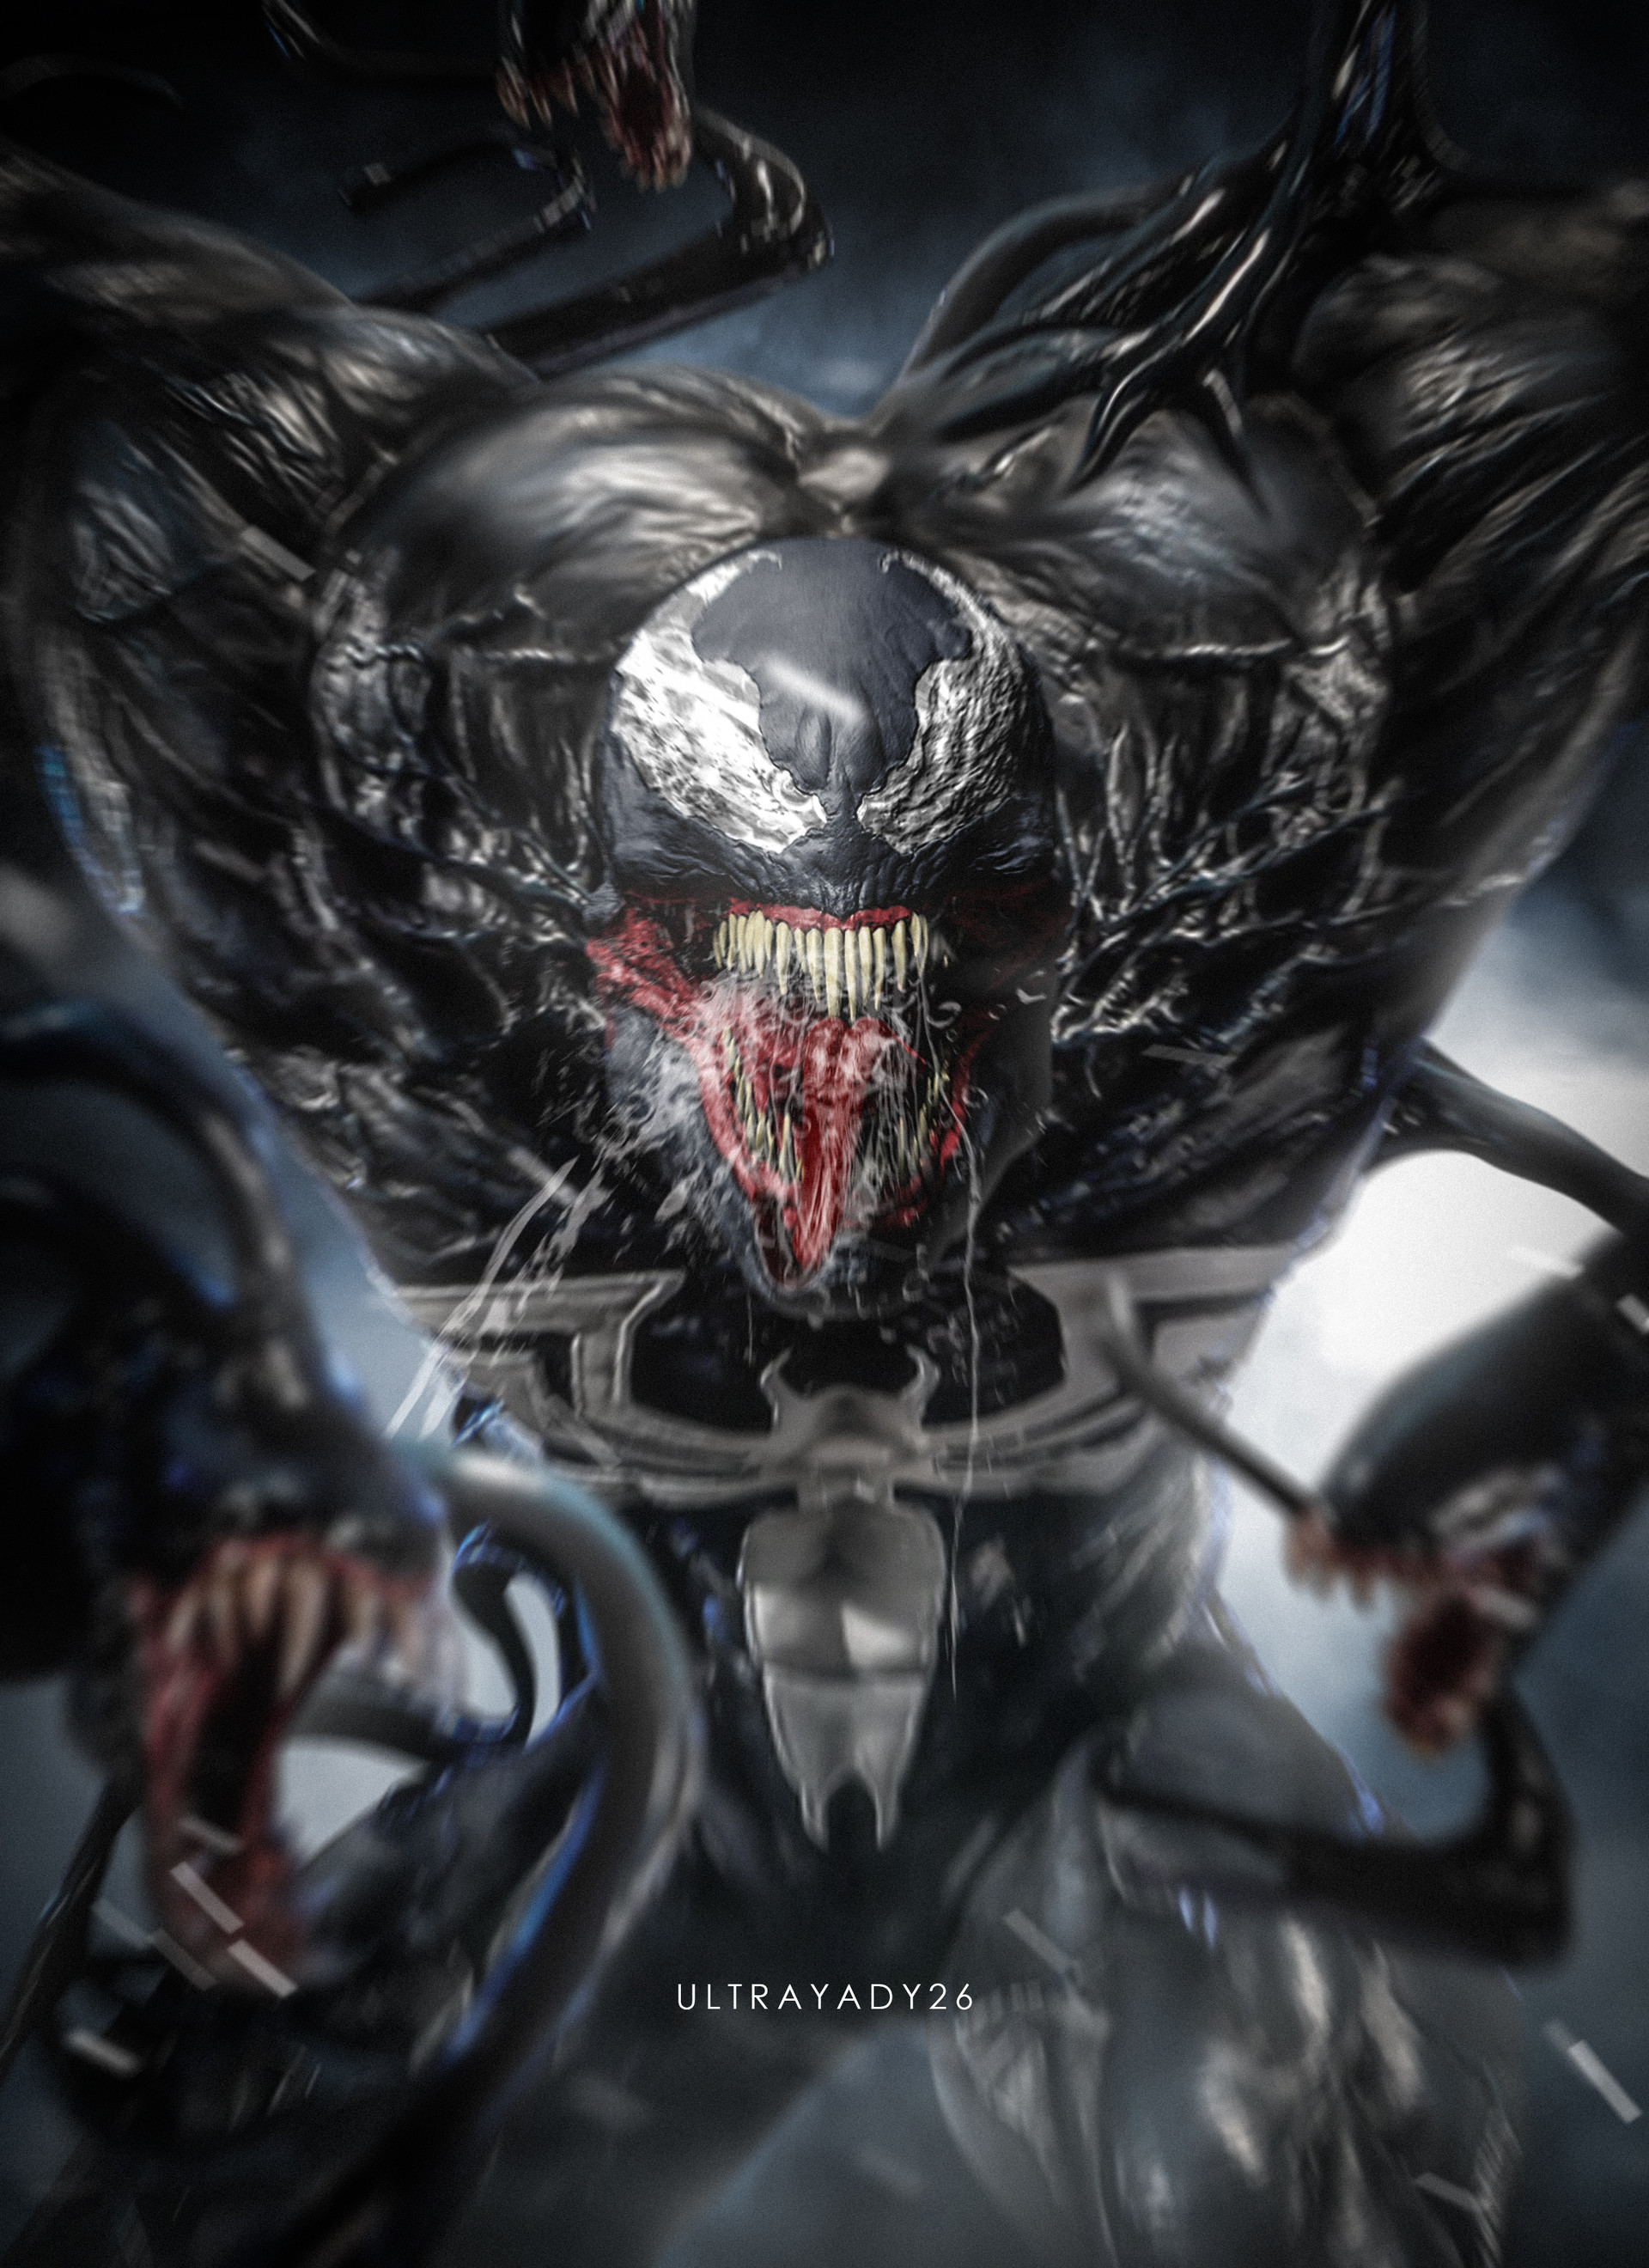 ArtStation - WE ARE VENOM!, yadvender singh